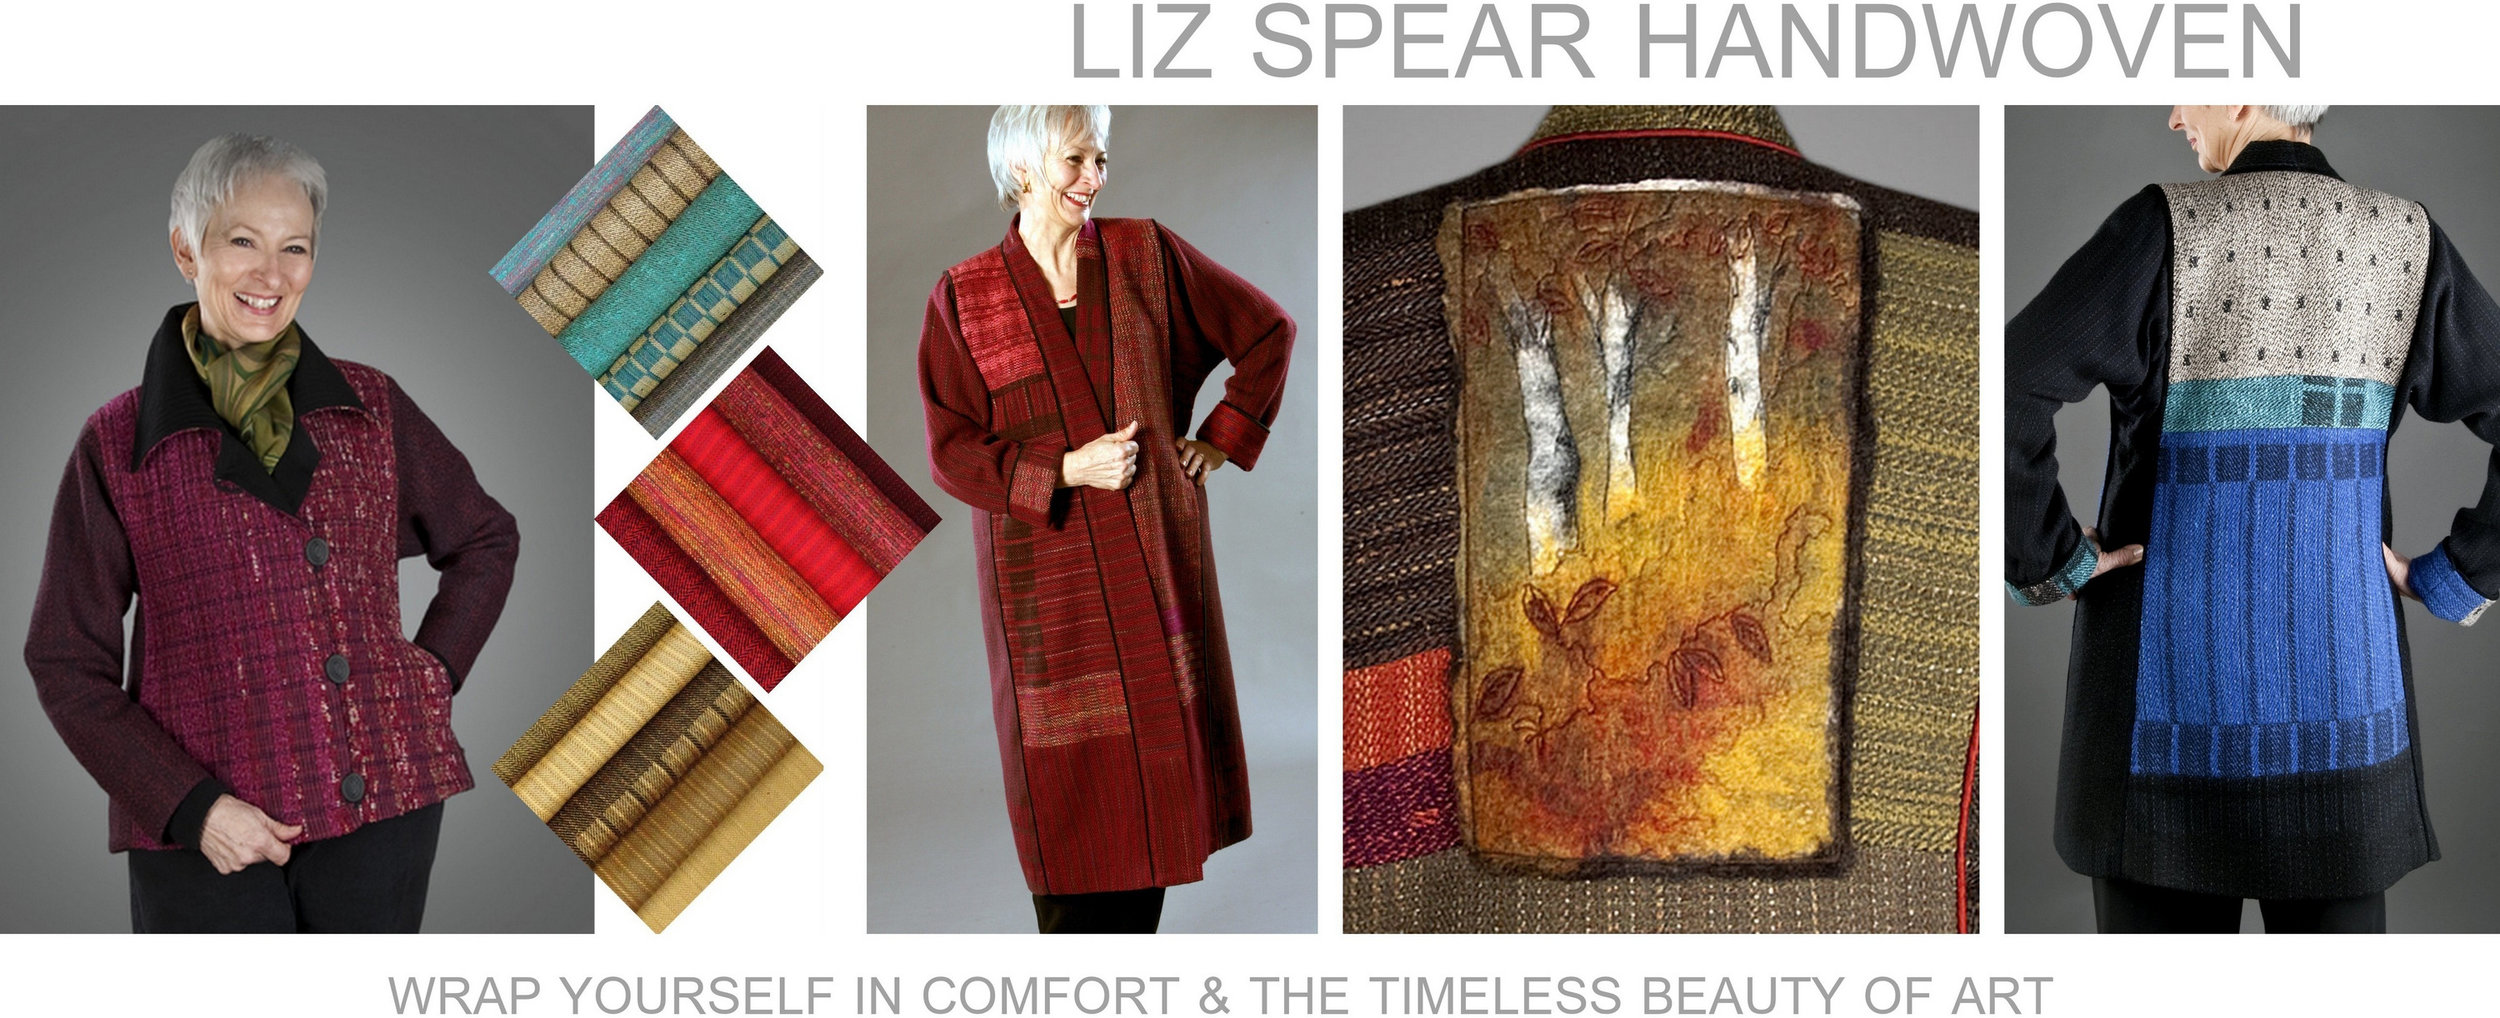 Liz Spear Handwoven, Liz and Friends.jpg